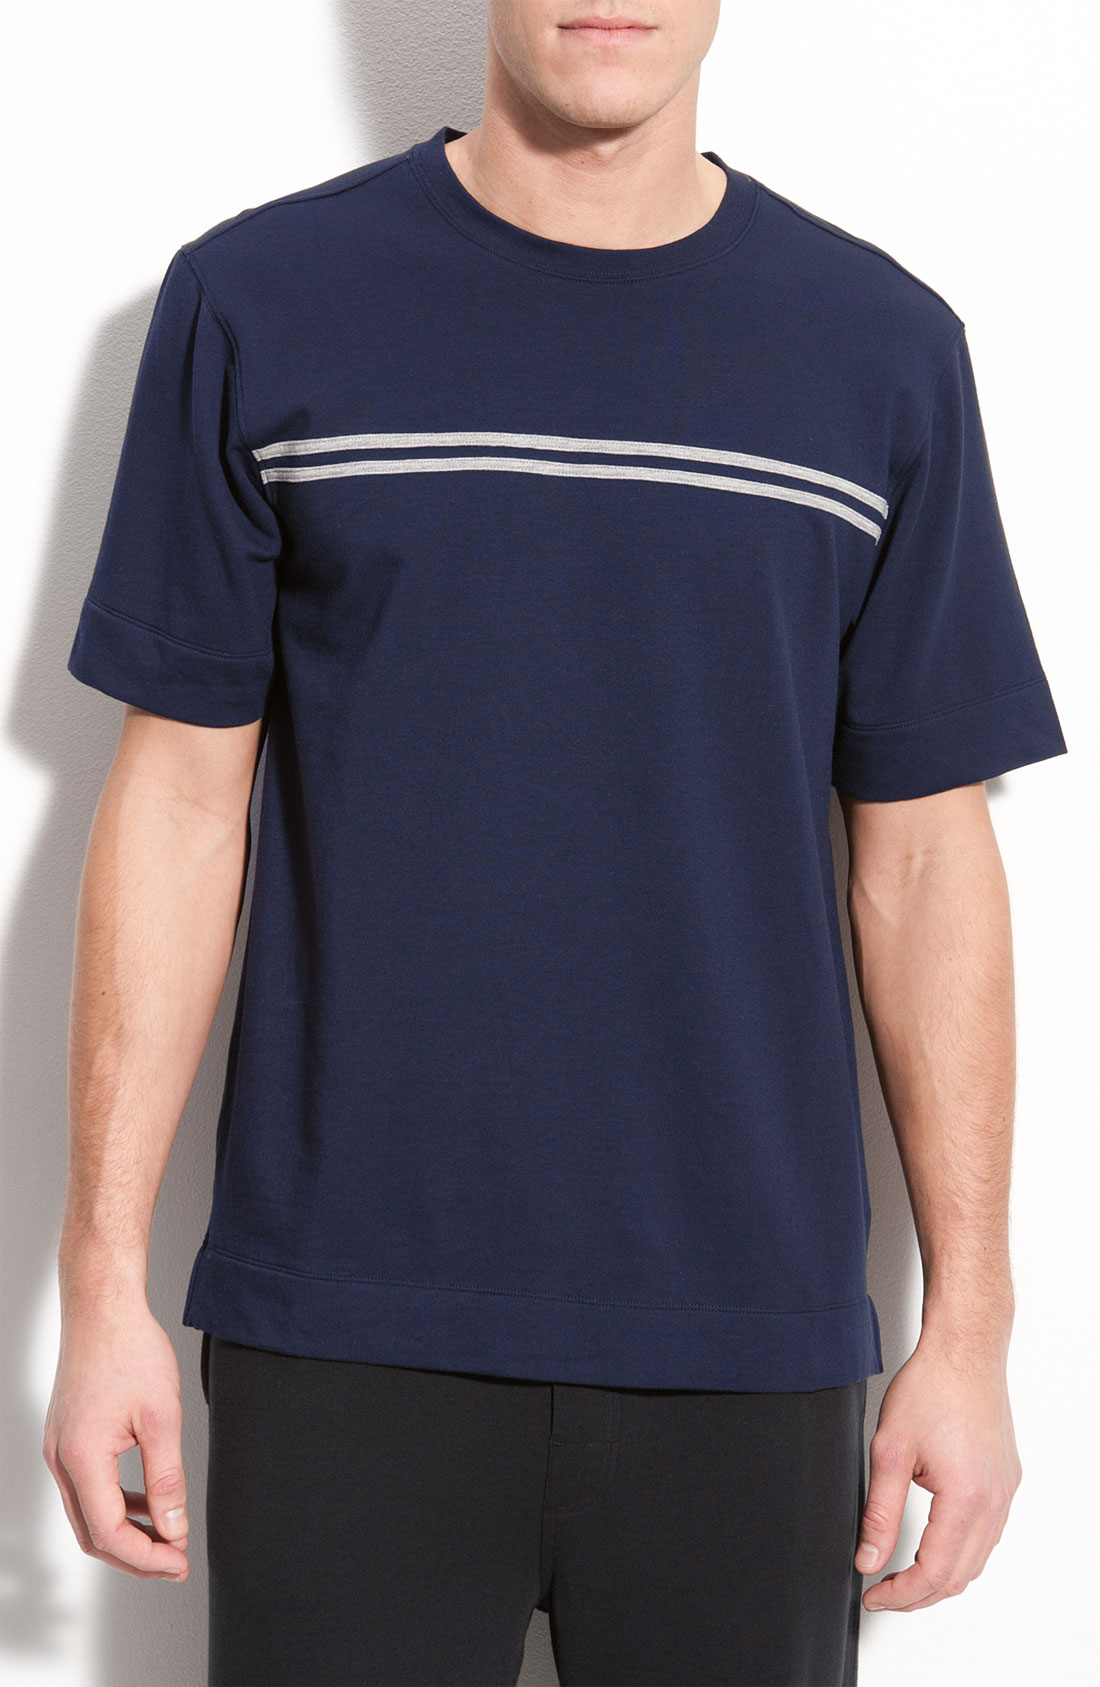 Coopers by jockey crewneck t shirt in blue for men navy for Jockey t shirts sale